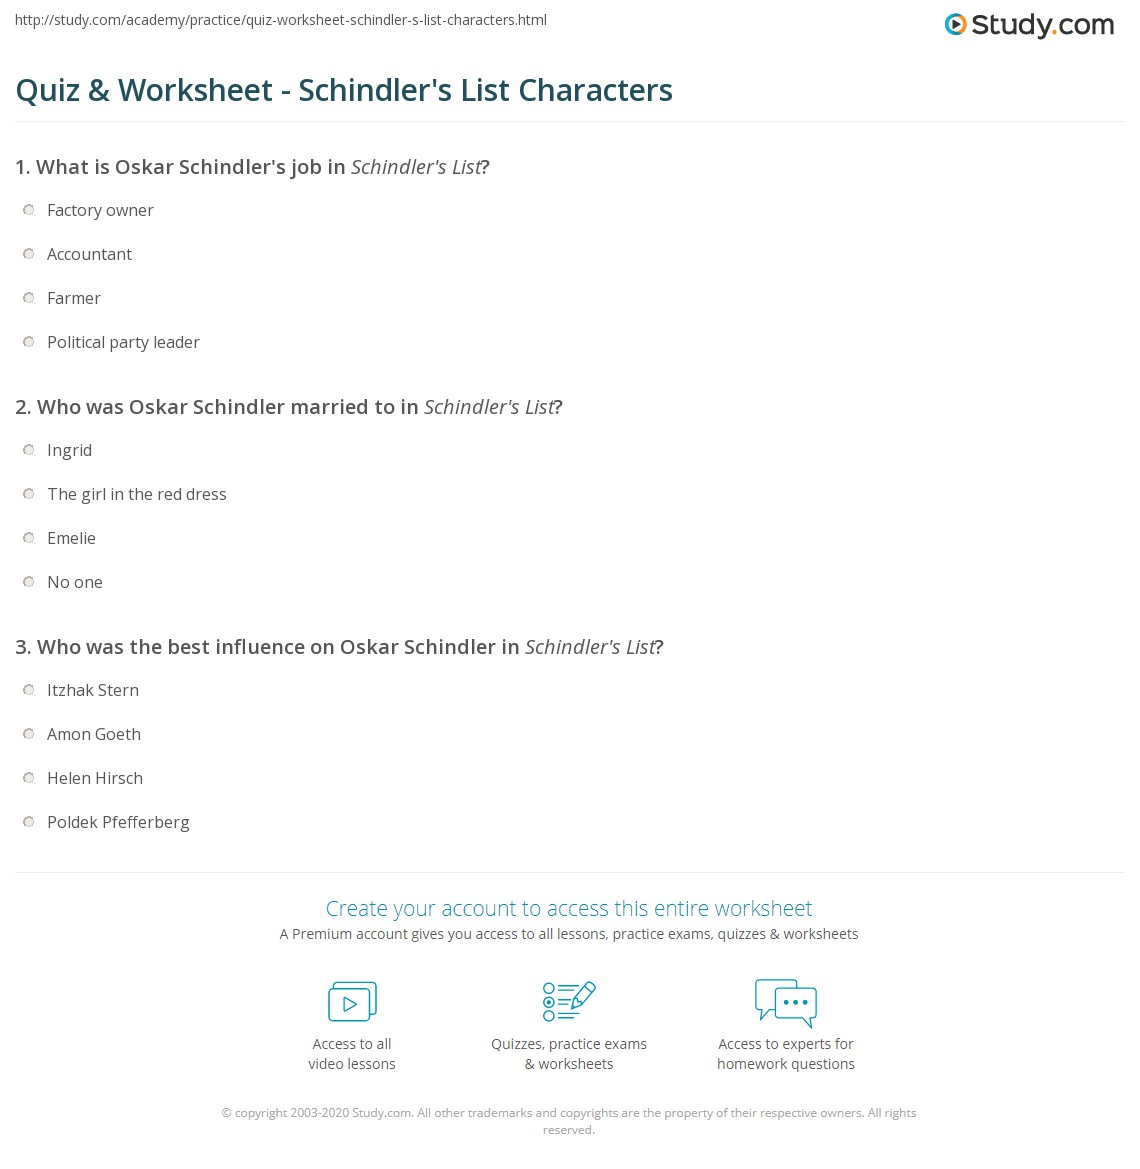 Quiz  Worksheet  Schindlers List Characters  Studycom Who Was Oskar Schindler Married To In Schindlers List Process Paper Essay also Health Care Essays  Persuasive Essay Topics High School Students